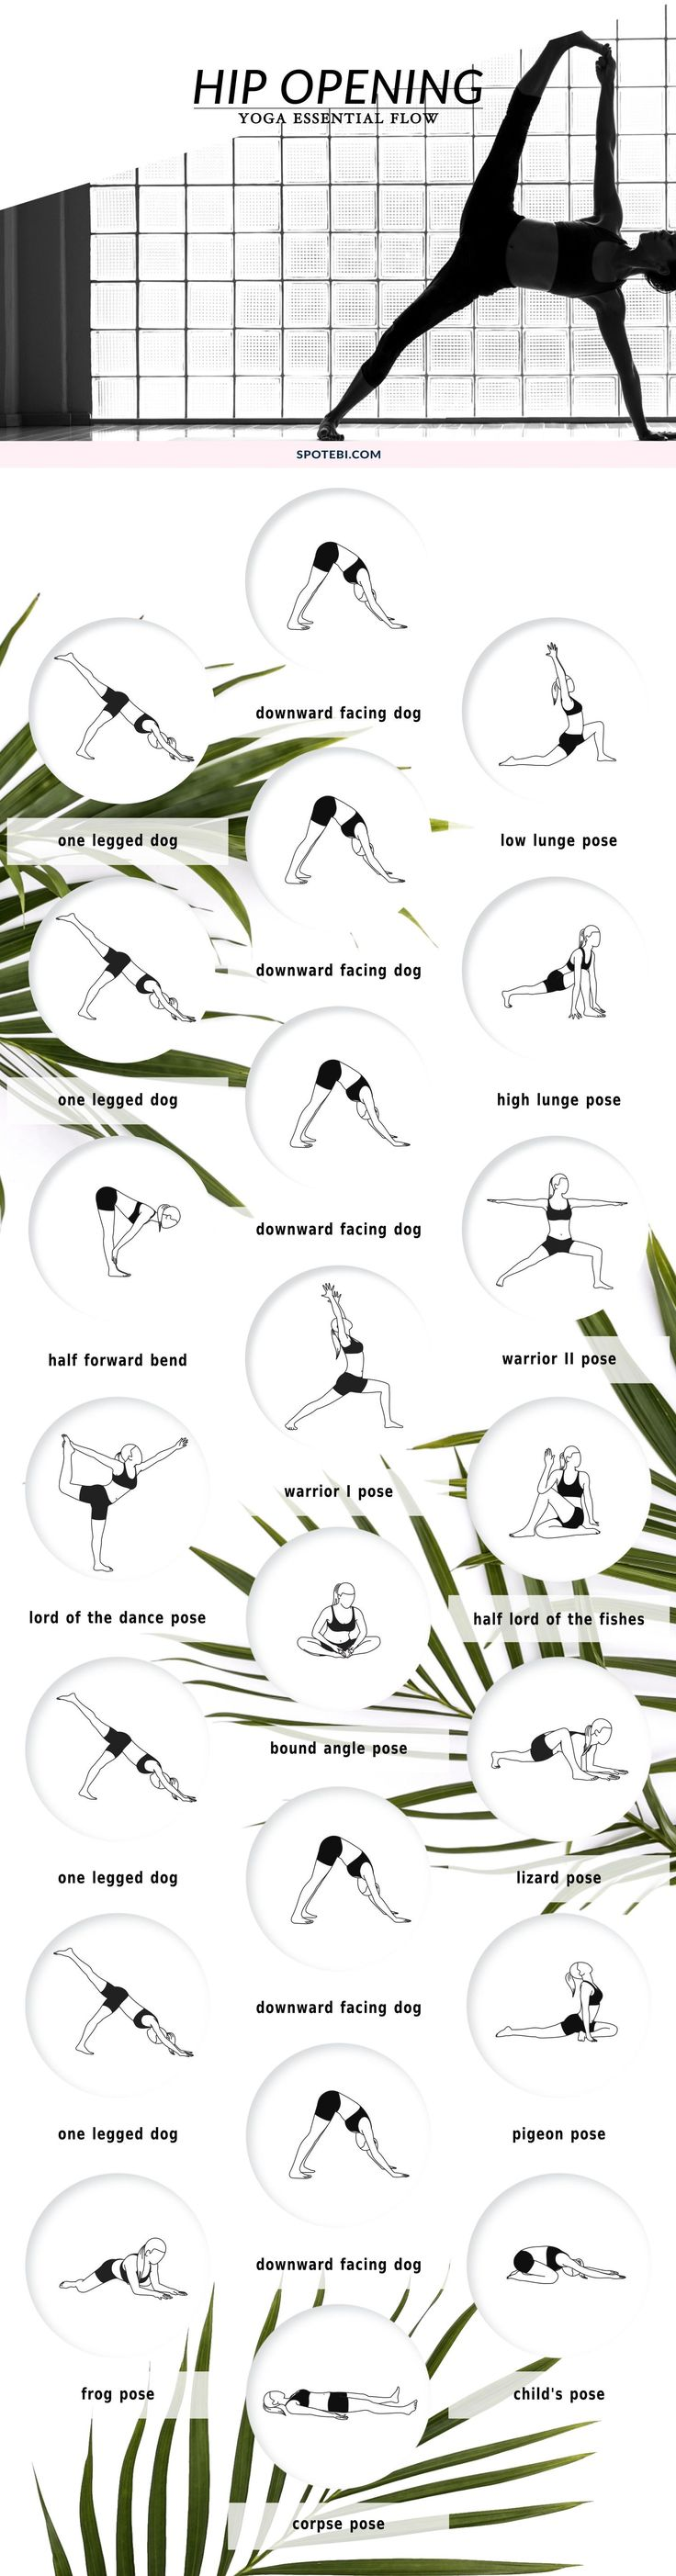 Improve circulation, agility, and flexibility and ease back pain with this hip opening yoga sequence. Move your hip joint through its entire range of motion, improve alignment and release all stress and negativity. http://www.spotebi.com/yoga-sequences/hip-opening-flow/